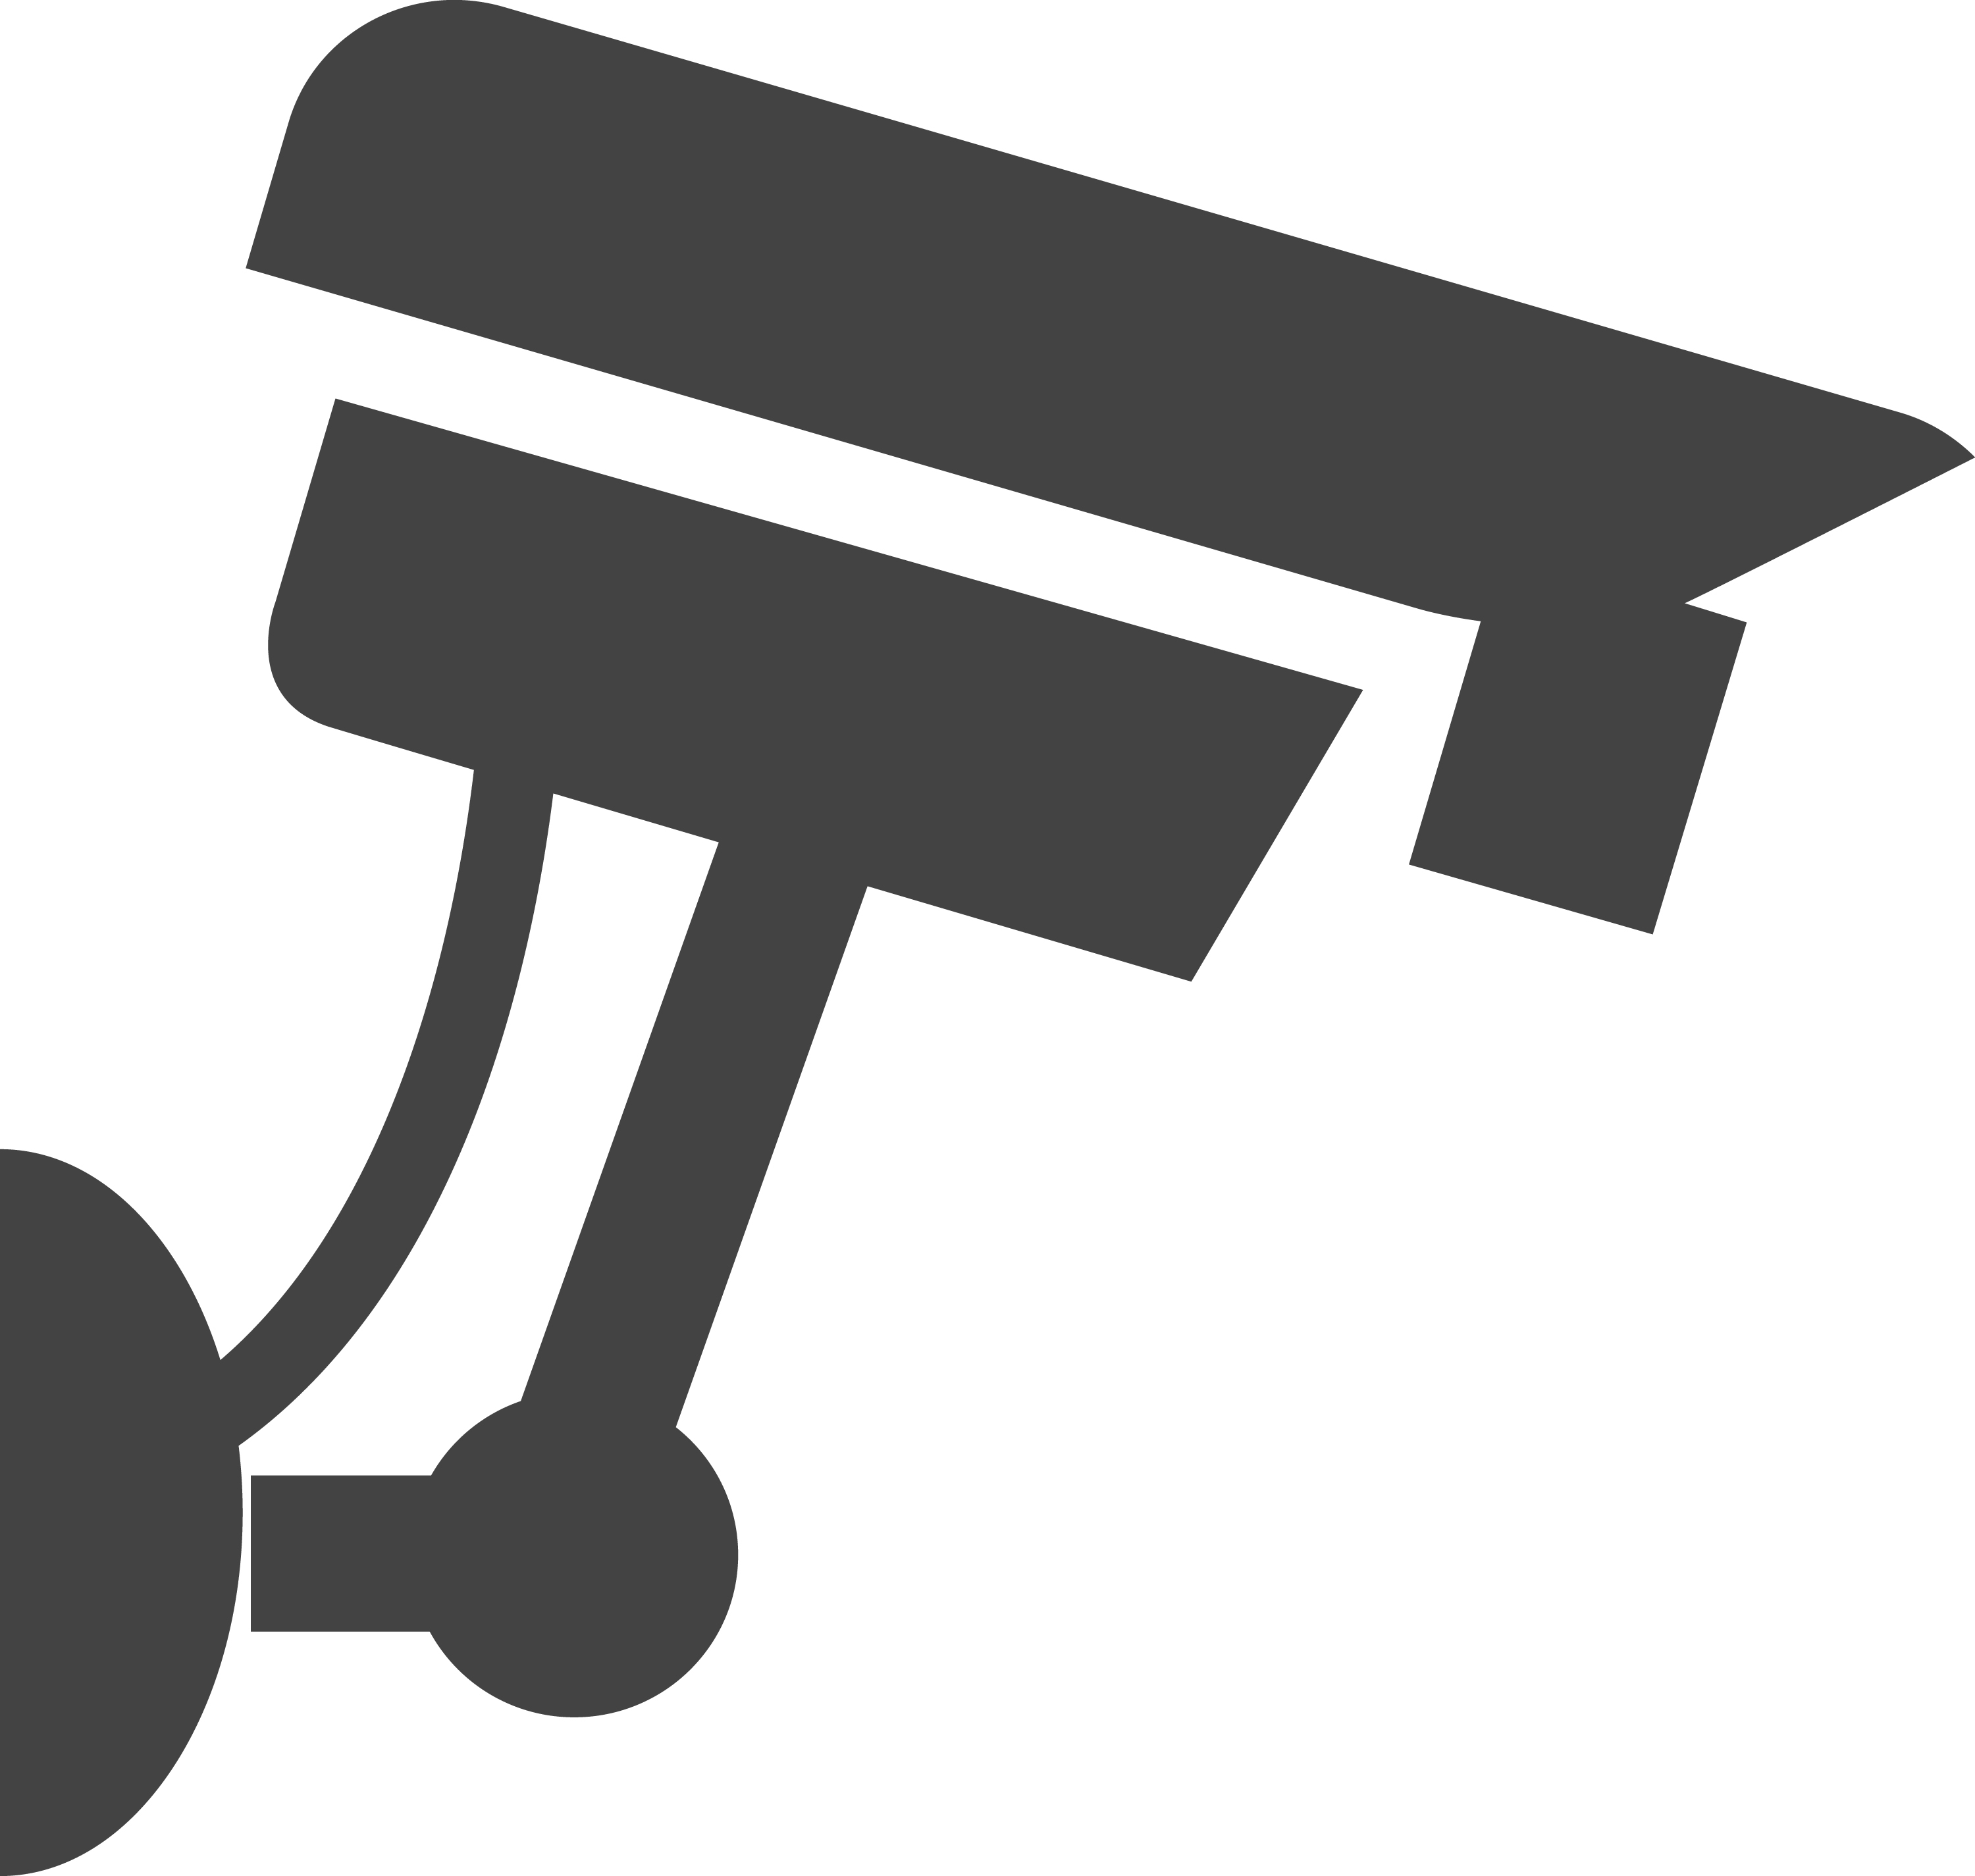 Surveillance cameras cliparts graphic freeuse library Free Security Camera Cliparts, Download Free Clip Art, Free Clip Art ... graphic freeuse library